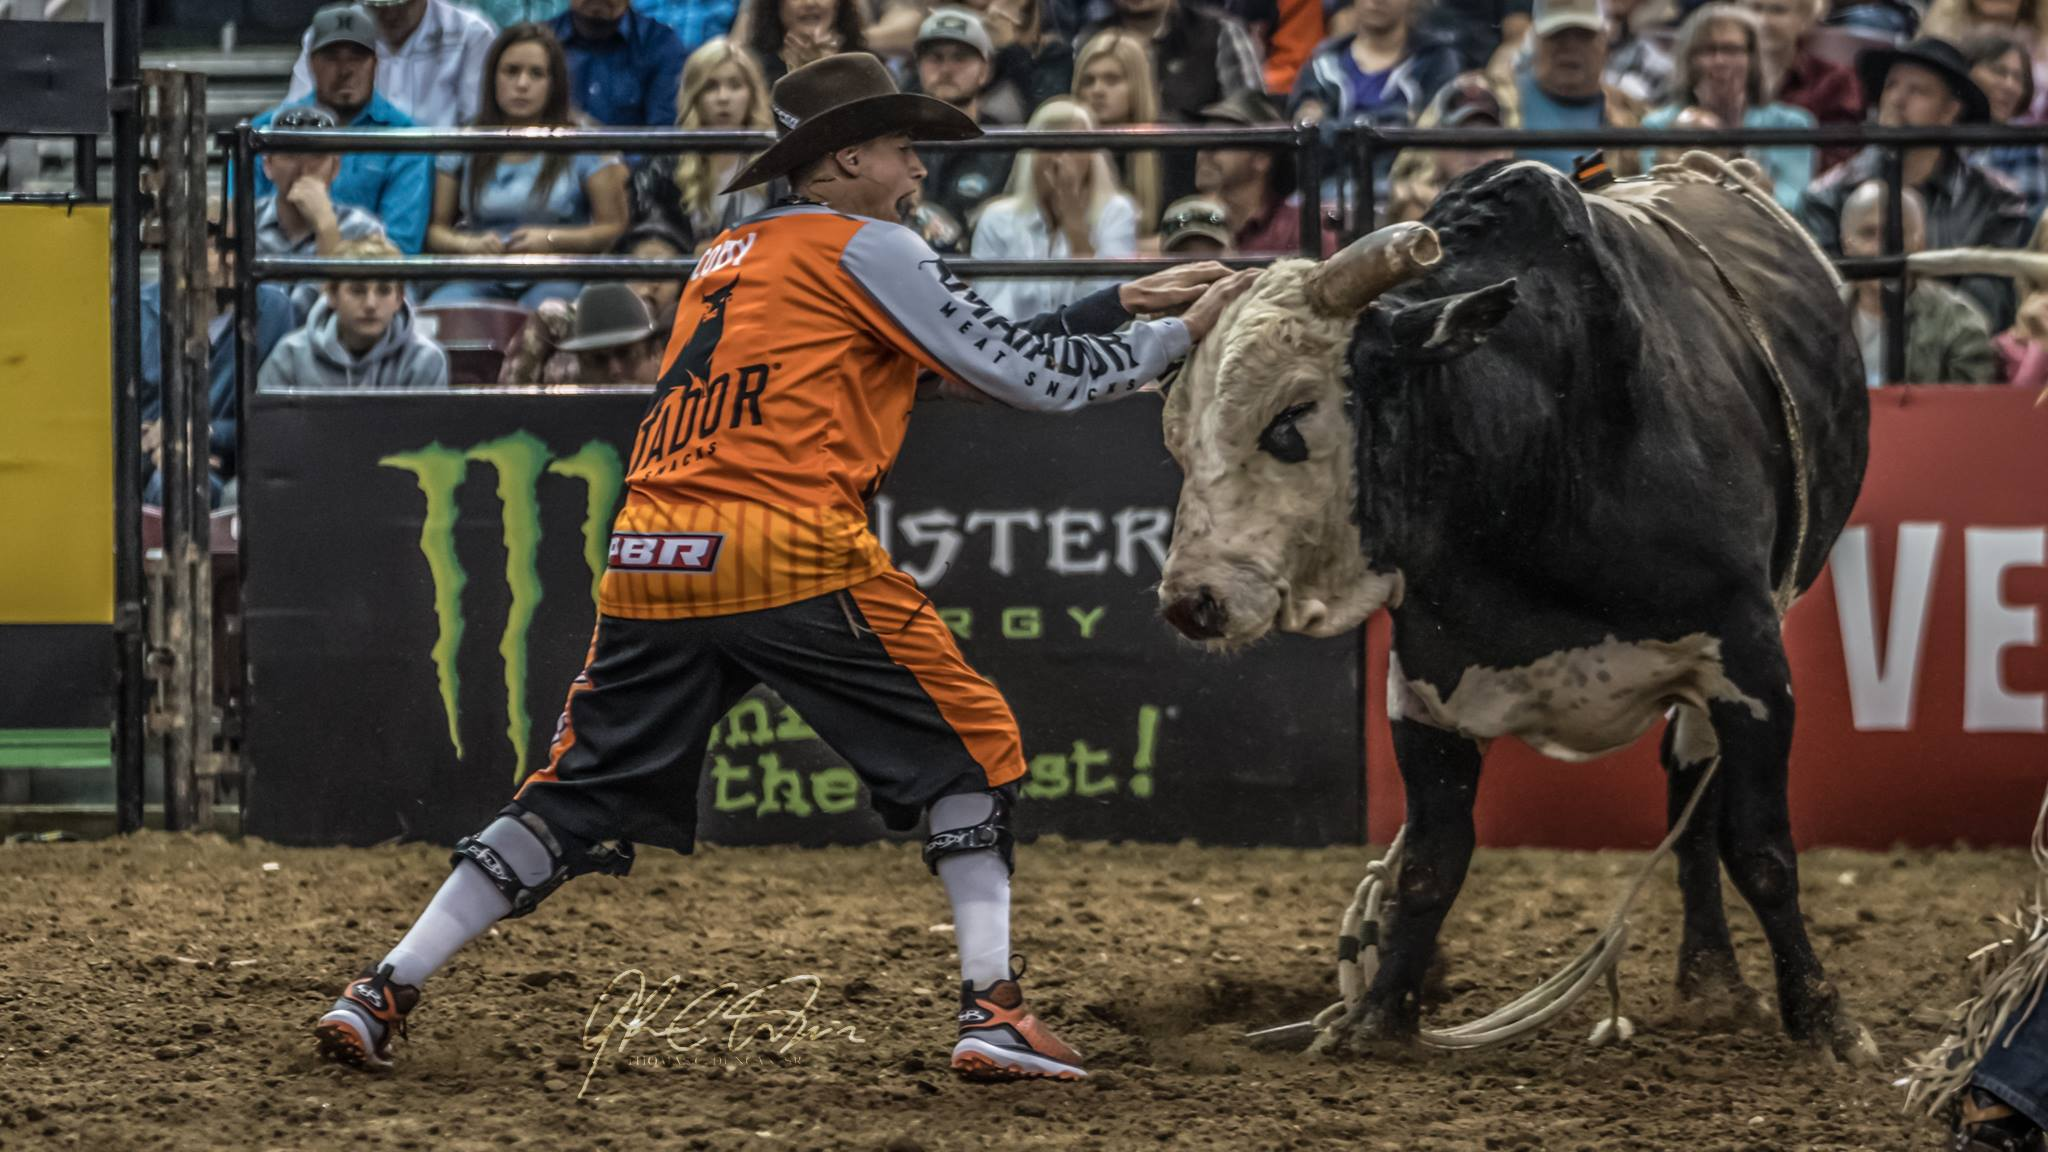 Bullfighter PBR at Nampa DeWALT INvitational